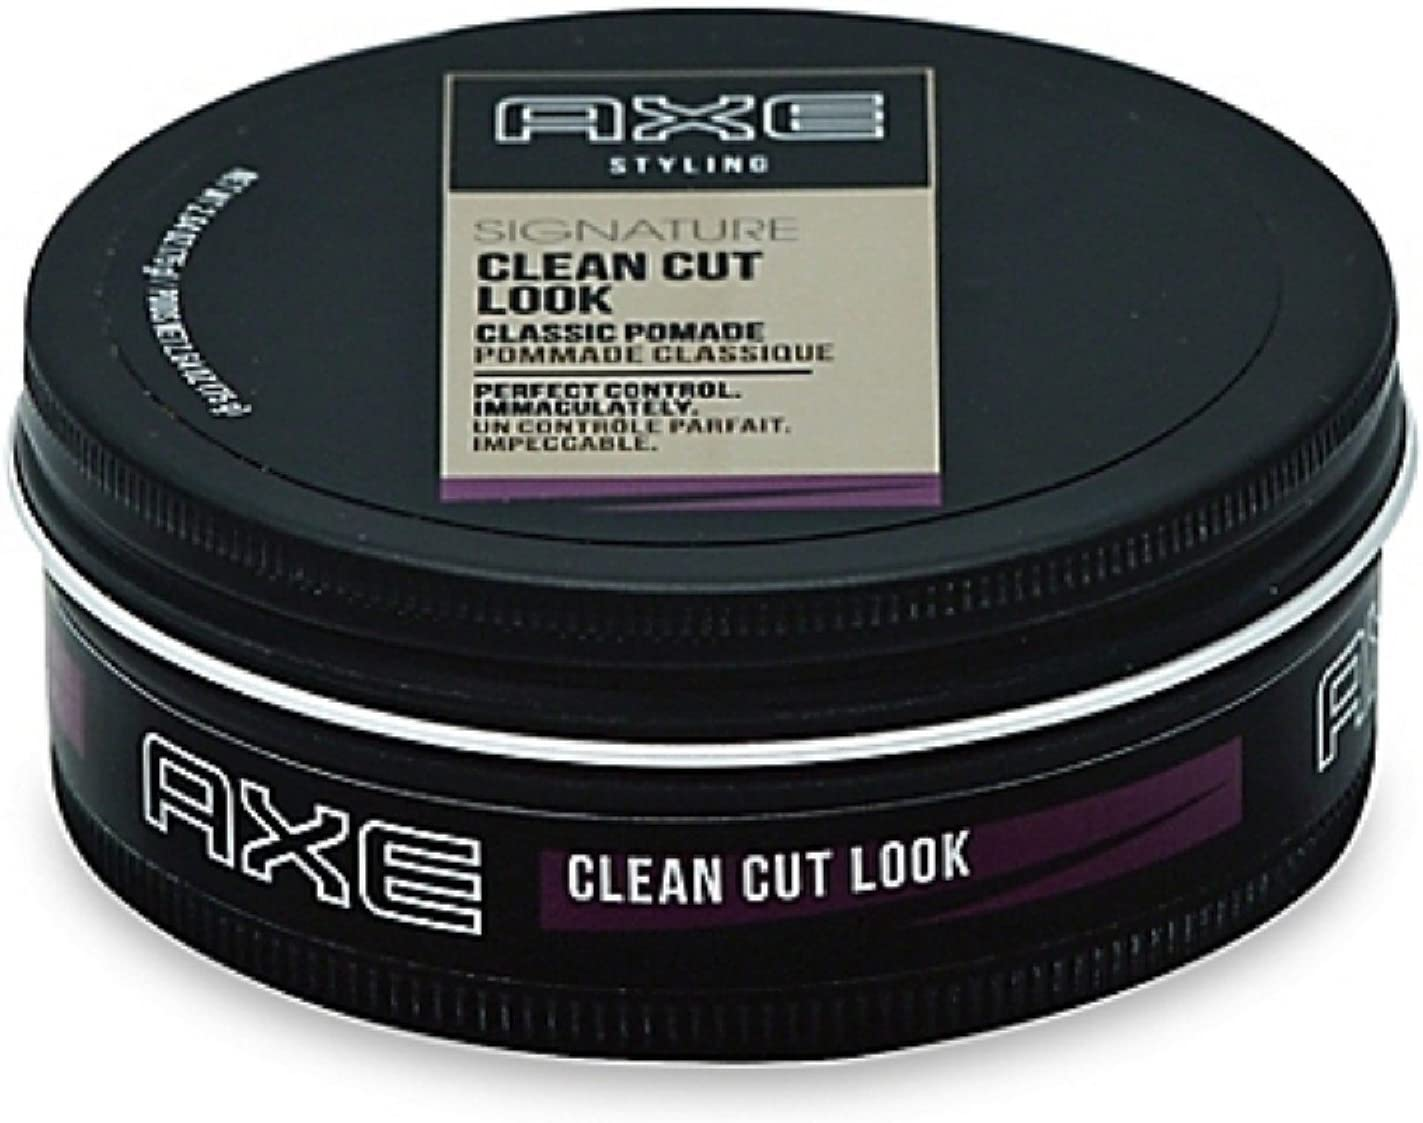 Axe Clean Cut Look Hair Pomade Classic 2.64 oz (Pack of 6)